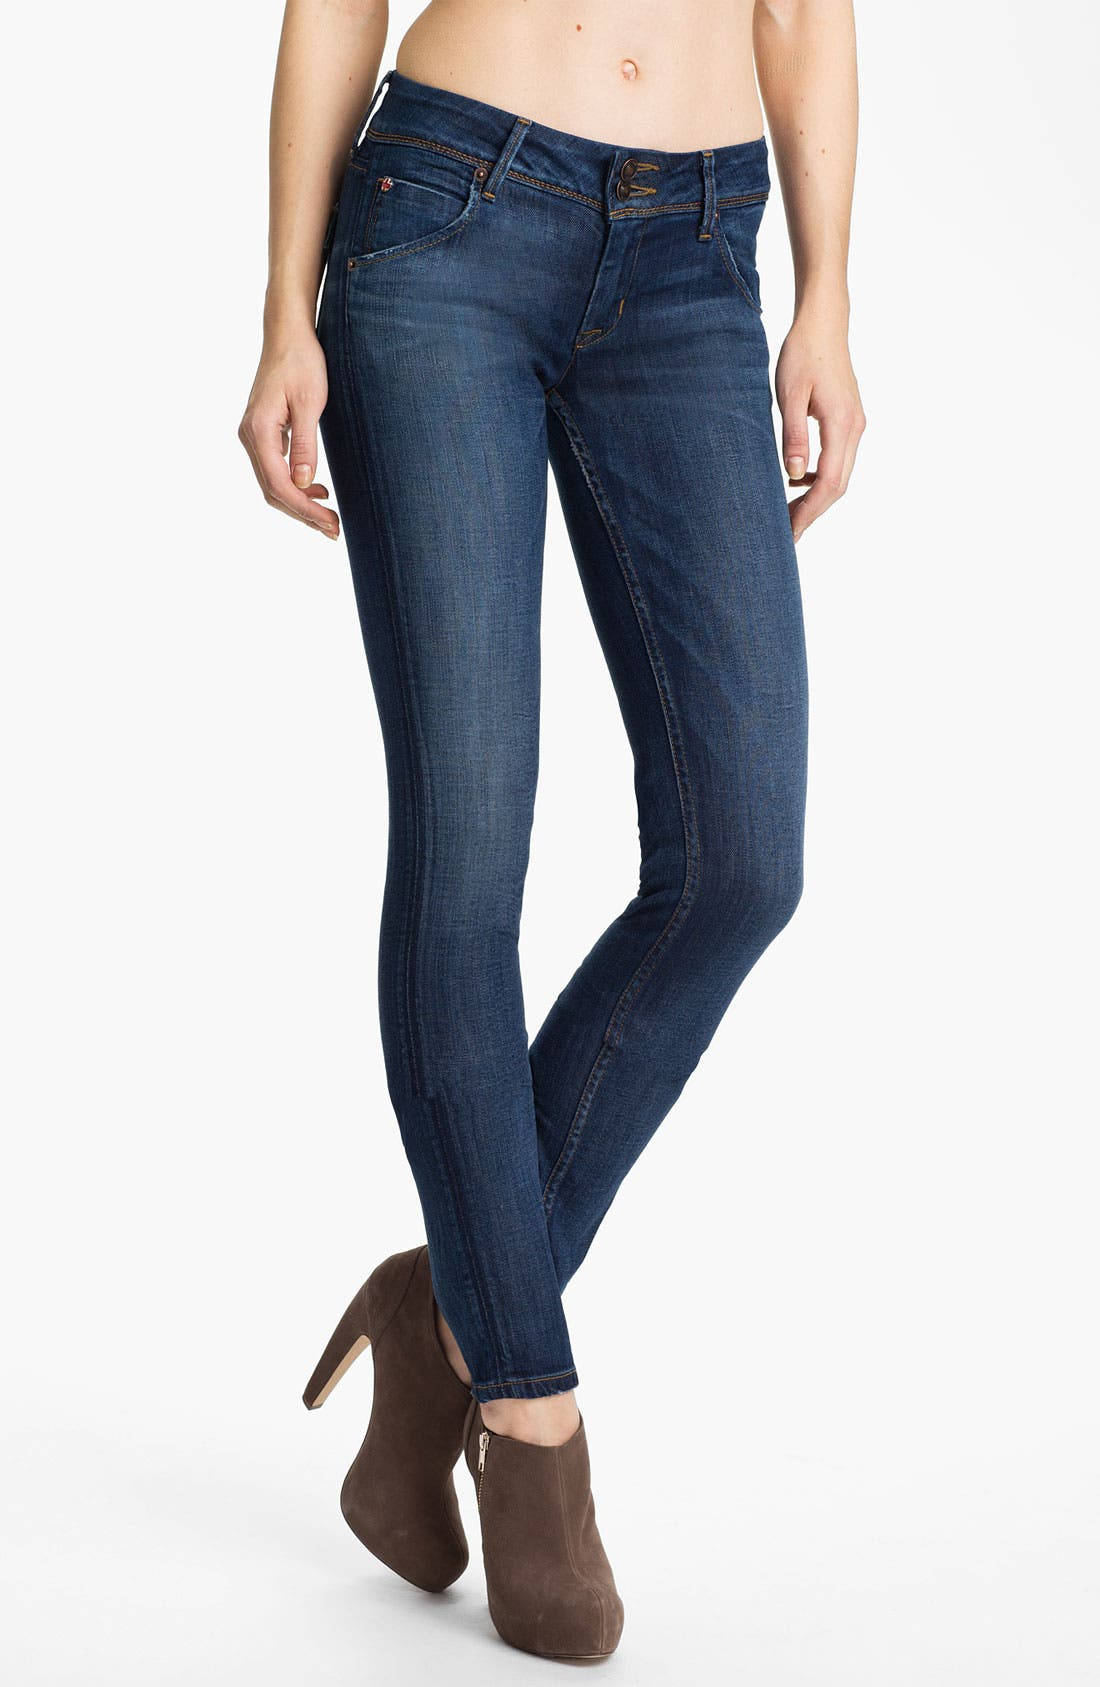 Main Image - Hudson Jeans 'Collin' Skinny Stretch Jeans (Lownes)